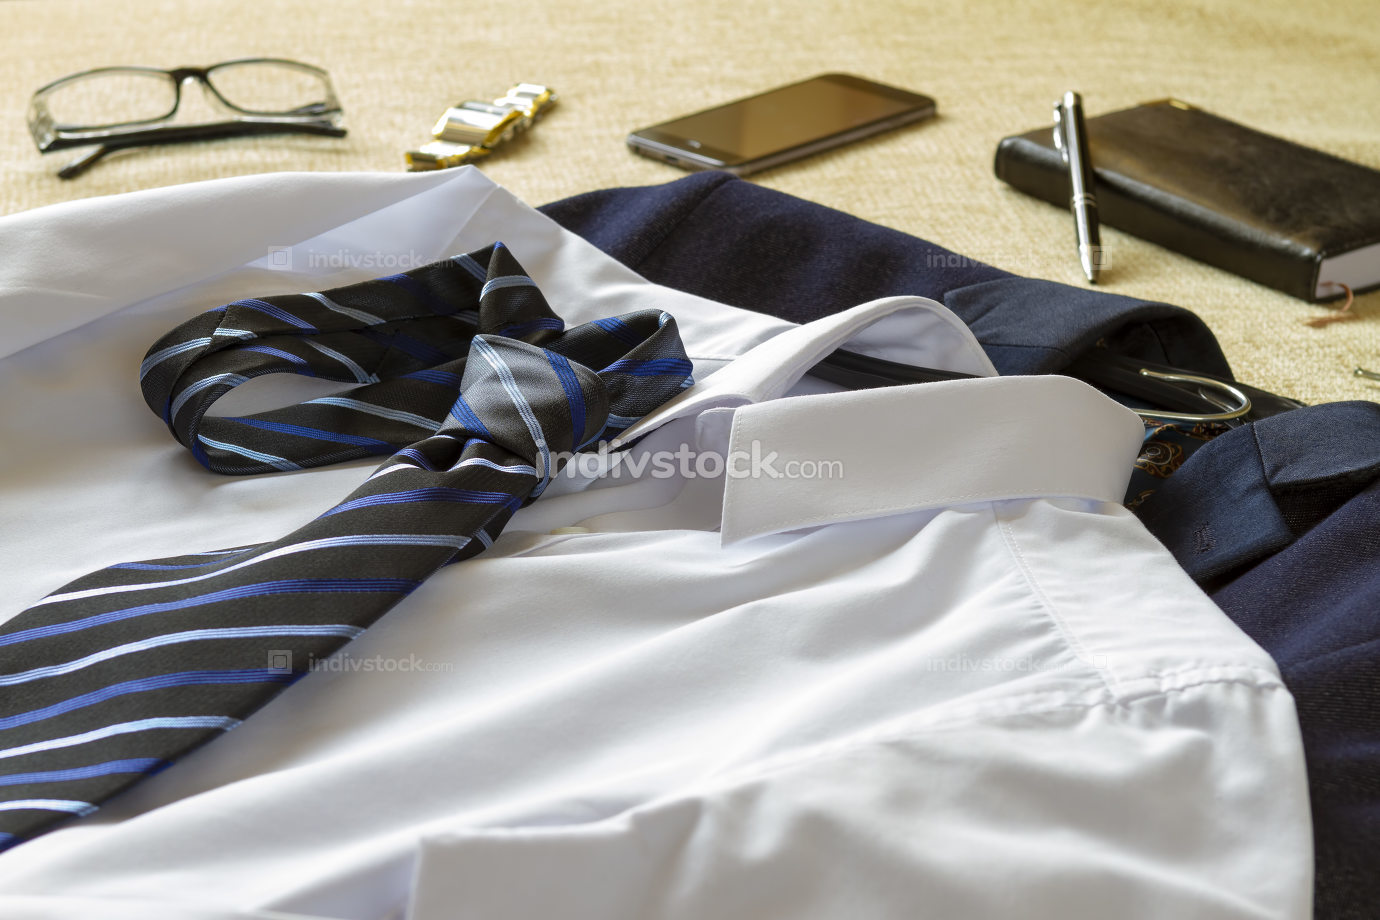 Business man clothes and accessories on bed